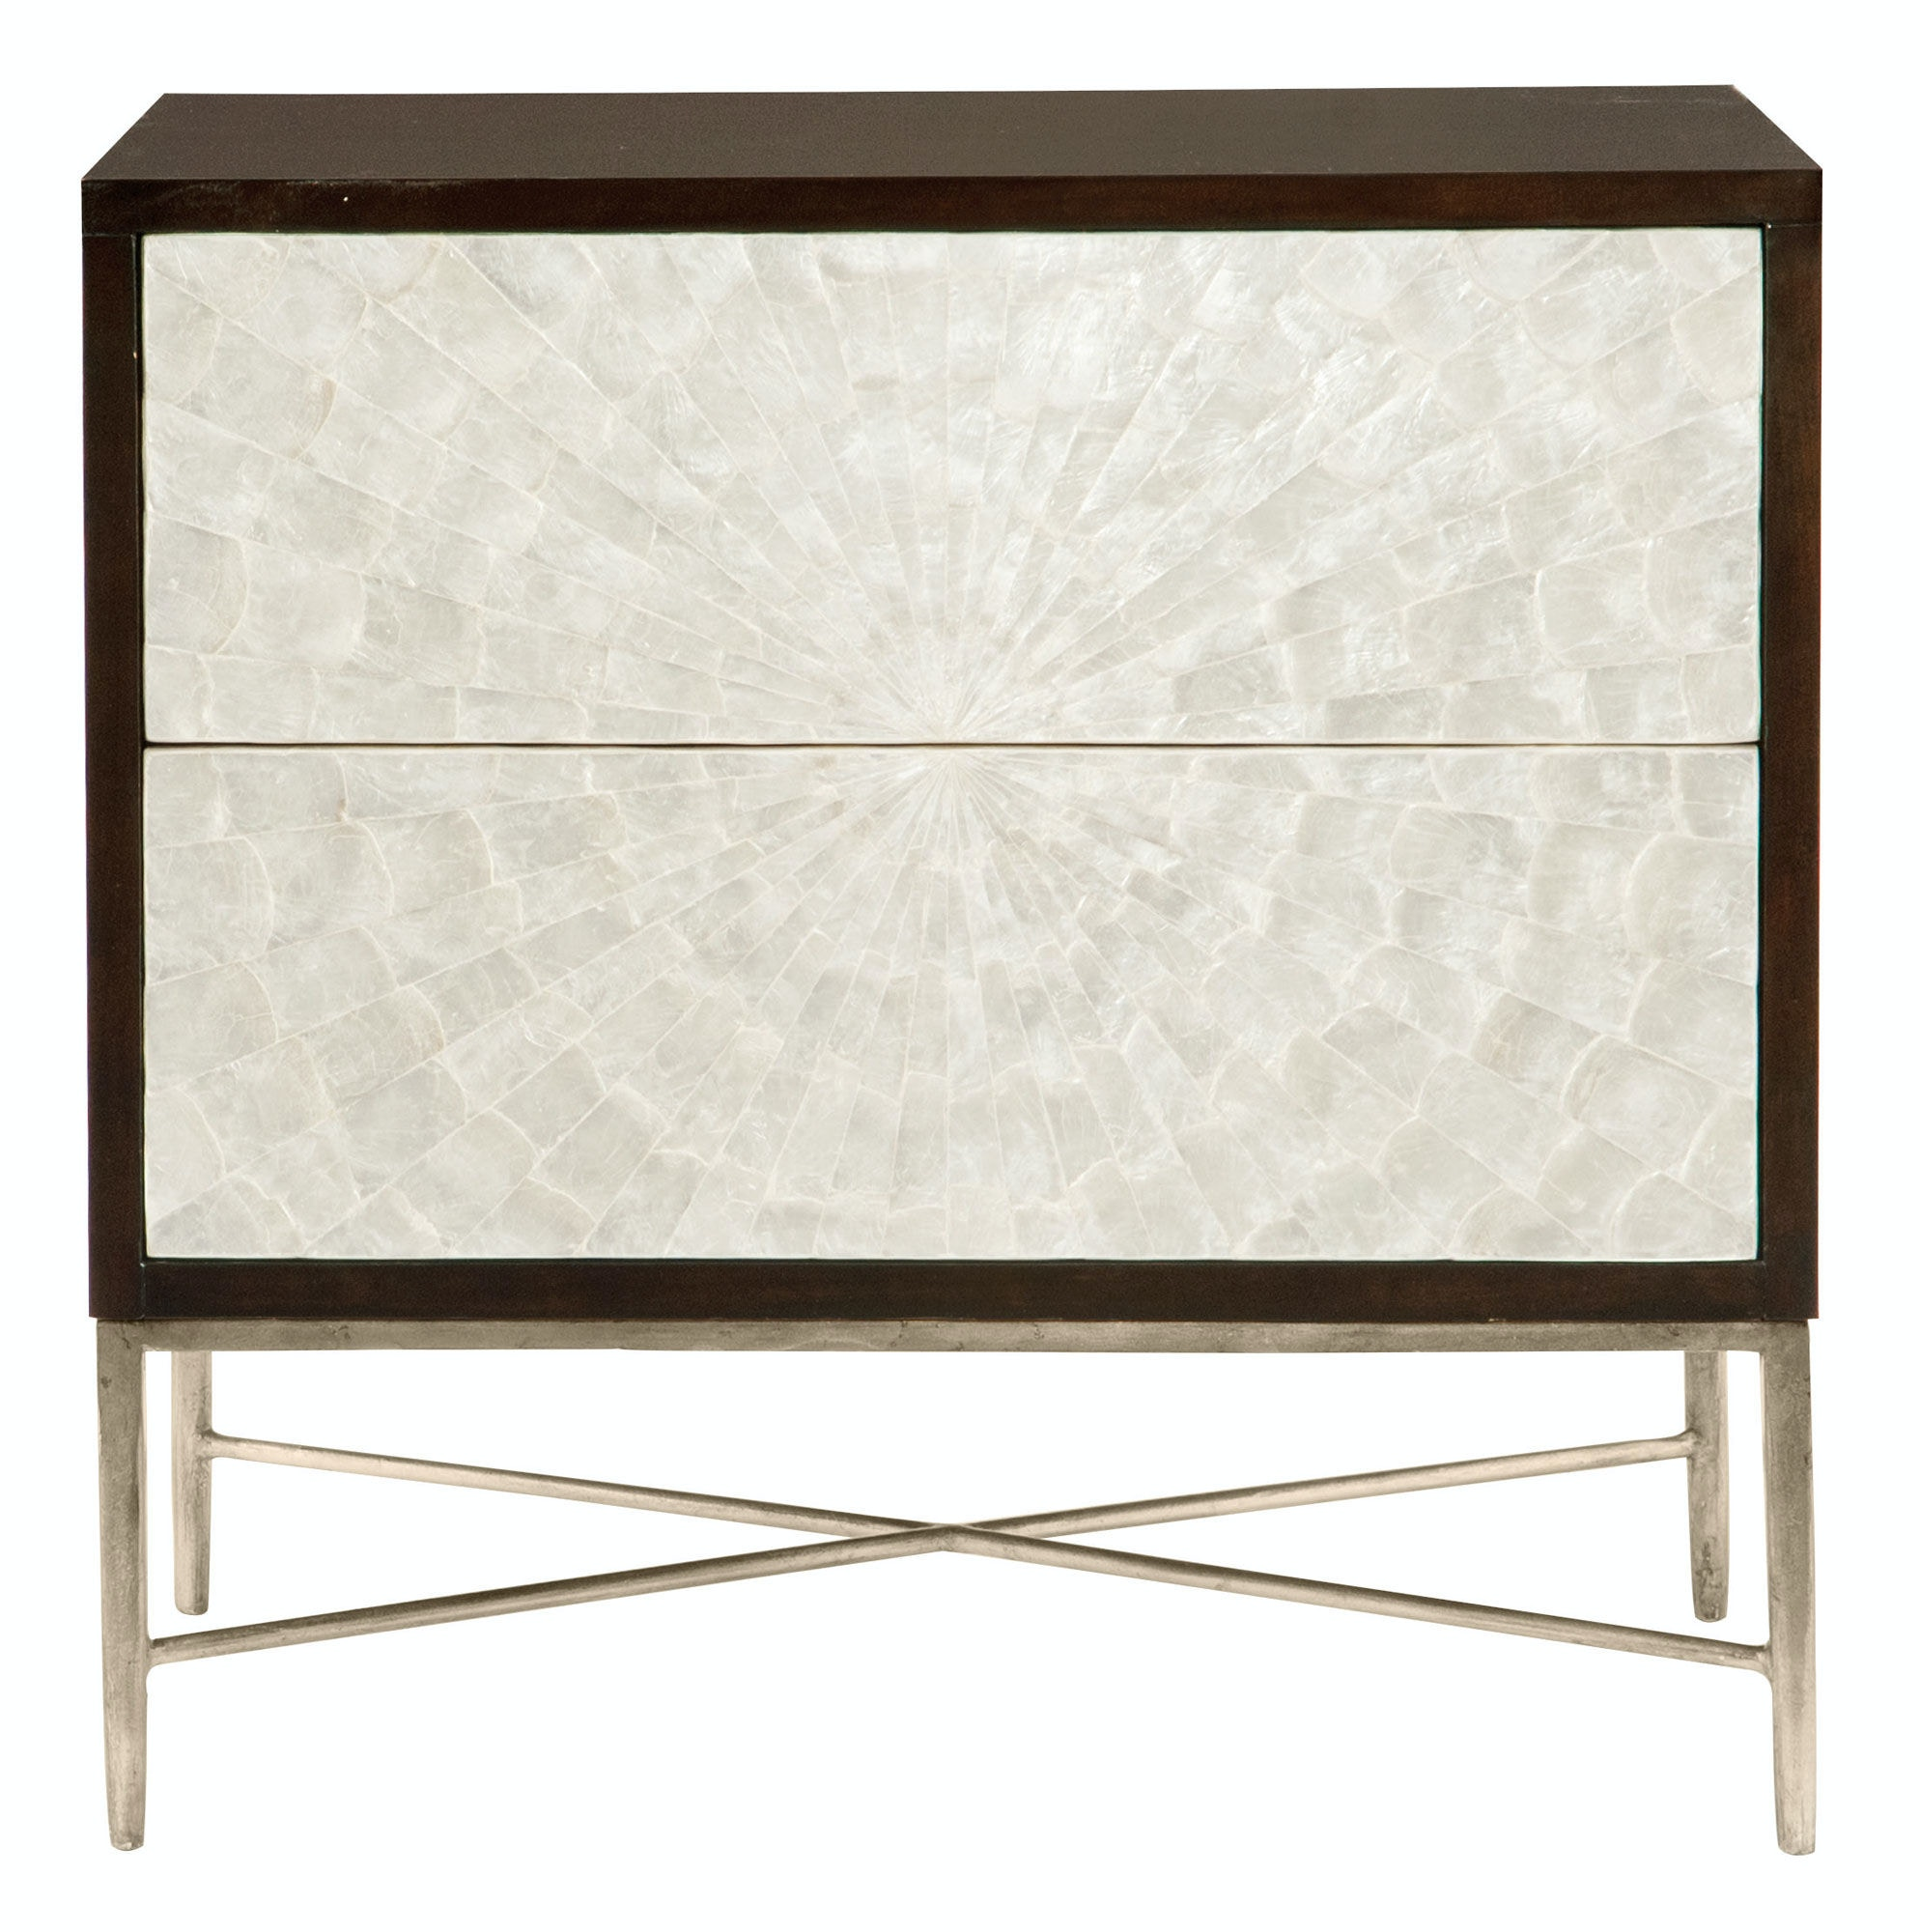 Bernhardt Interiors Bedroom Nightstand 353-216 - Ennis Fine Furniture - Boise, ID, Reno, NV ...